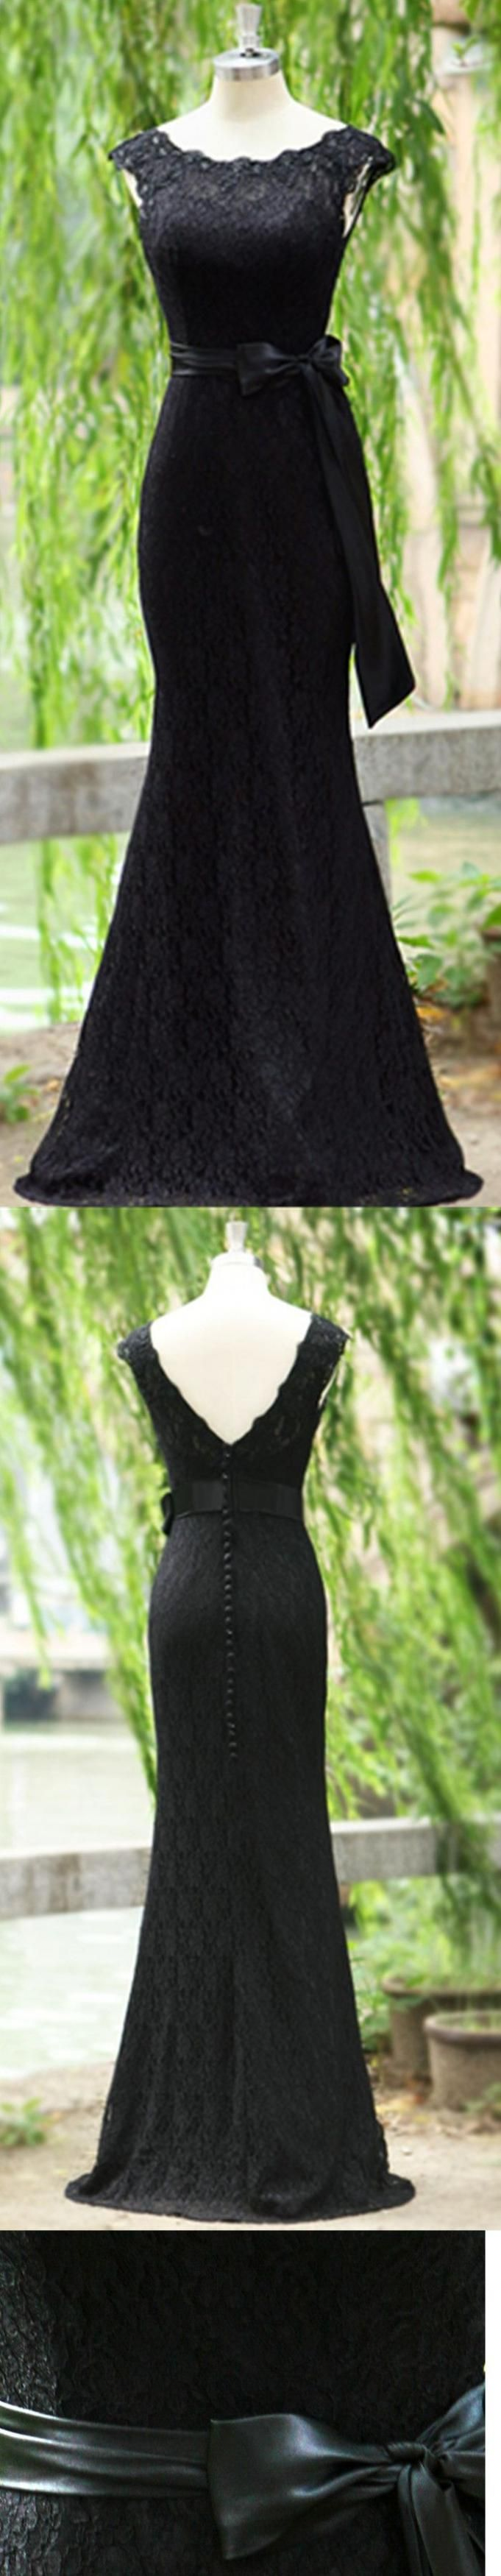 Exquisite Mermaid Black Lace Prom Dress Scoop Neckline Ribbon Backless Floor-length Evening Dress long Evening Dresses Mother of the Bride Dresses Lace Bridesmaid Dress Off the Shoulder Graduation Dress Open Back Lace Wedding Dress Trumpet V-back Prom Dress